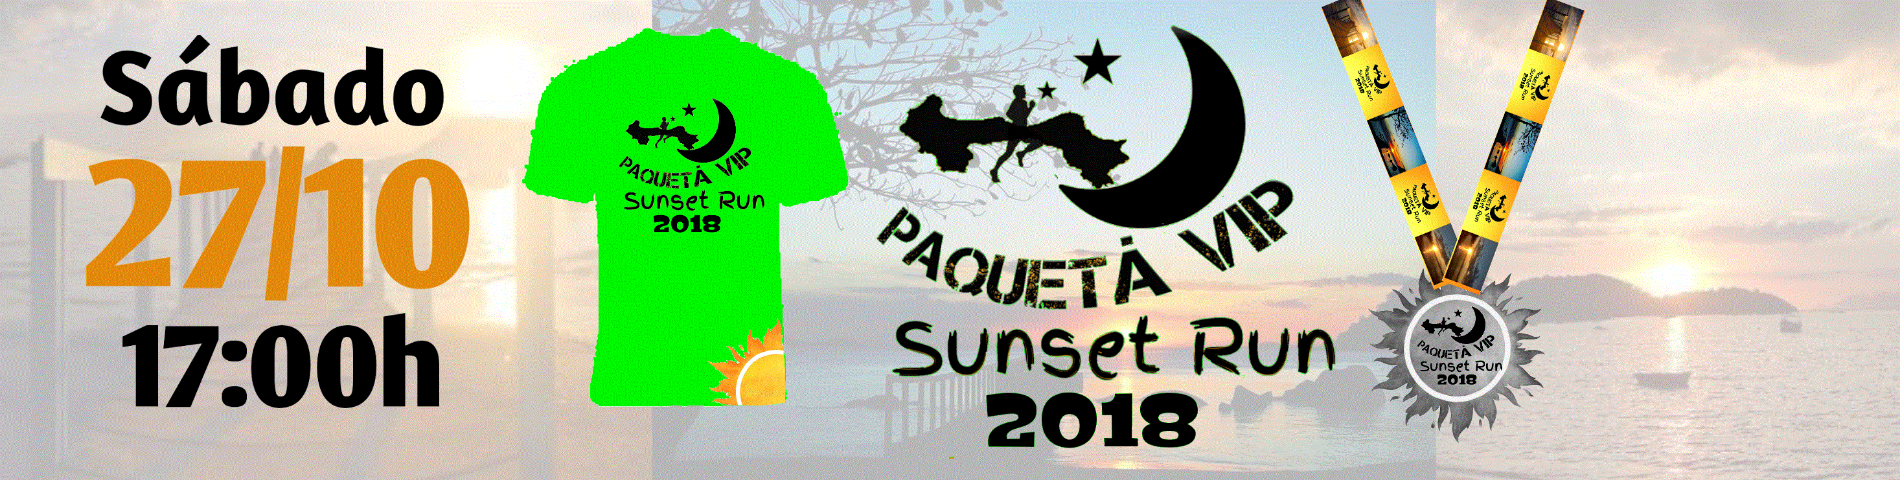 Paquetá Vip SUNSET RUN 2018